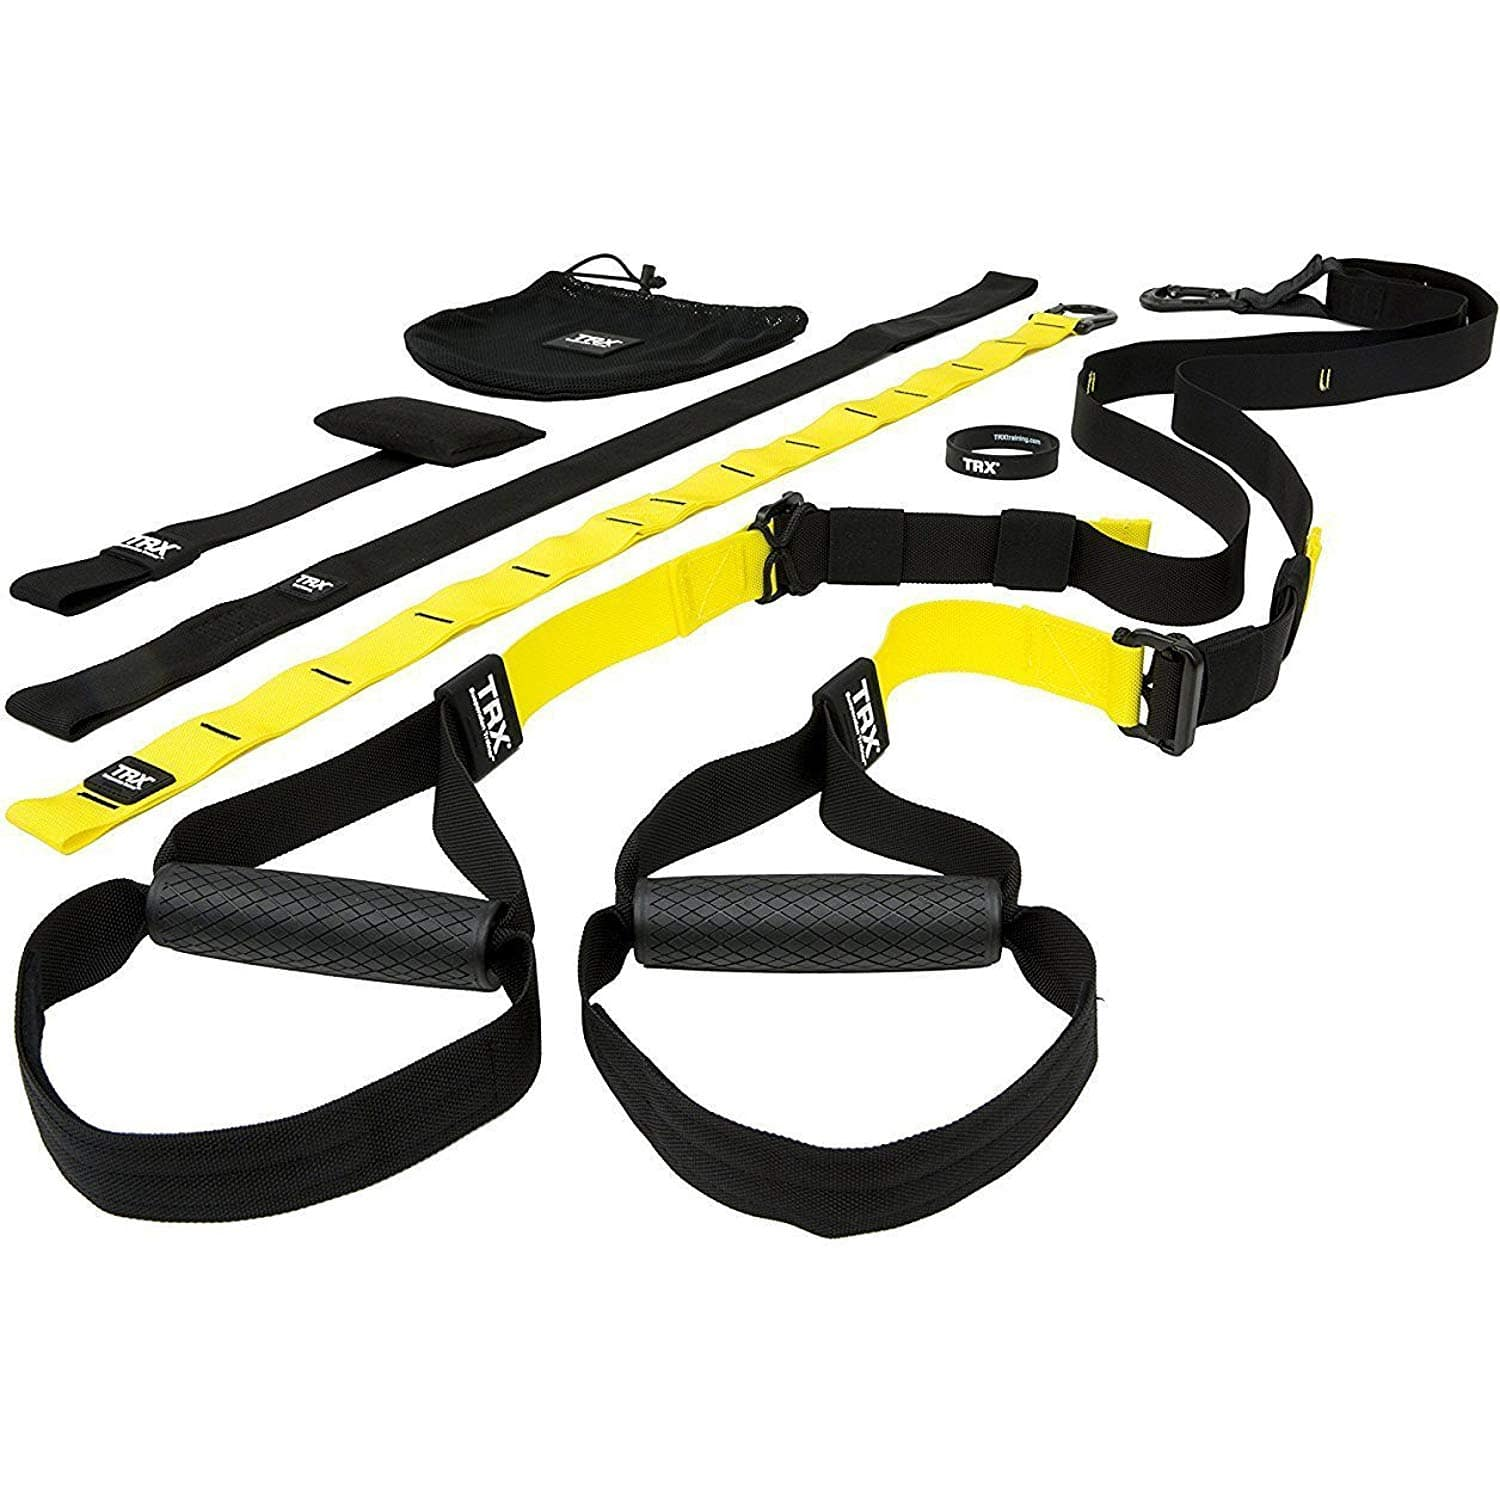 TRX PRO3 Suspension Trainer System Design & Durability| Includes Three Anchor Solutions, 8 Video Workouts & 8-Week Workout Program $118.95